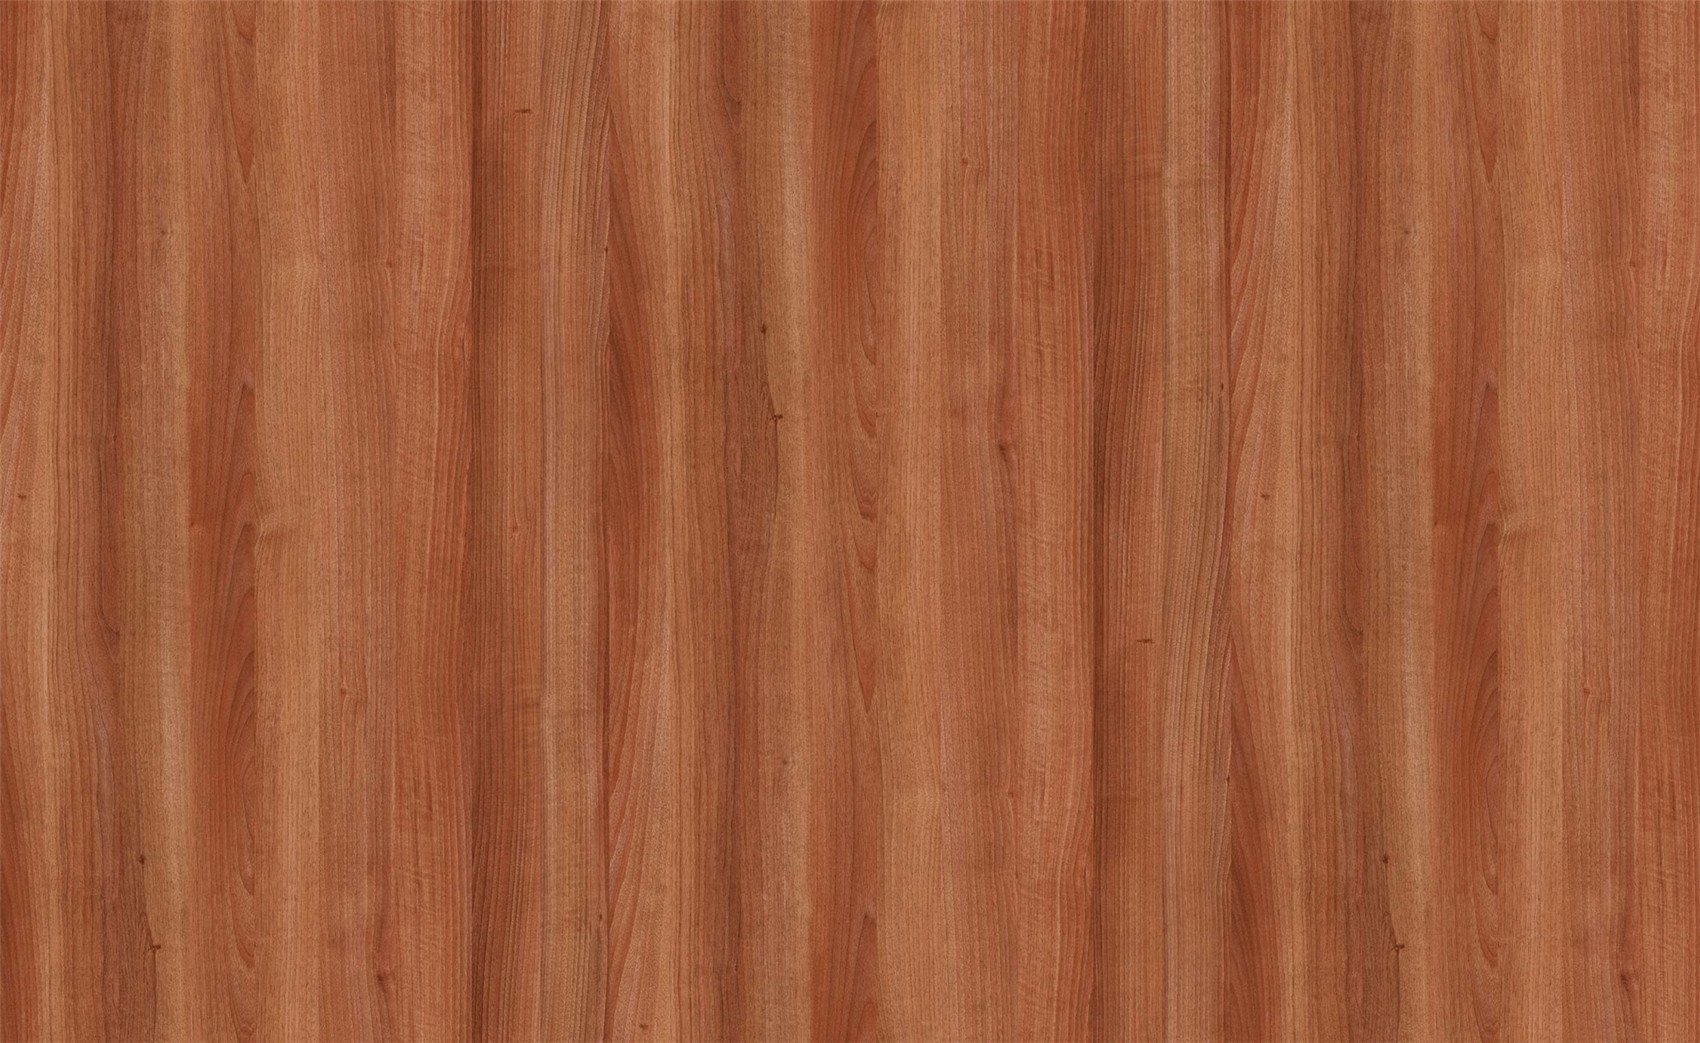 78198  idecor decor paper oak up to 7ft